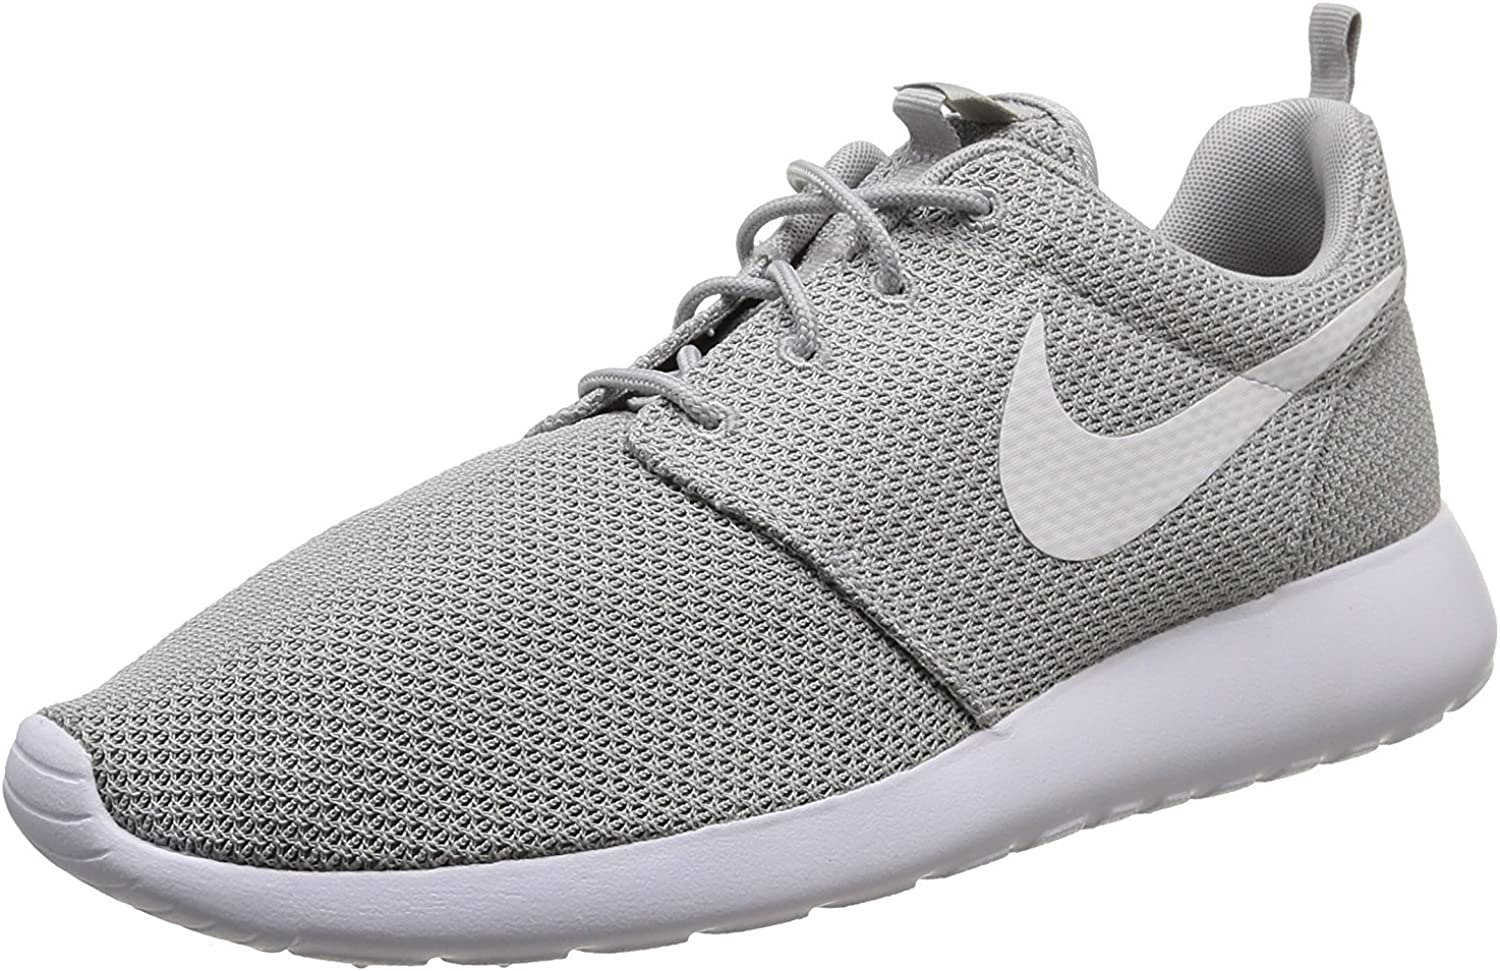 Seednoma Nike Nike Roshe Run One Men's schuhe 511881-023(G , US9.0)  Alle Waren sind Specials